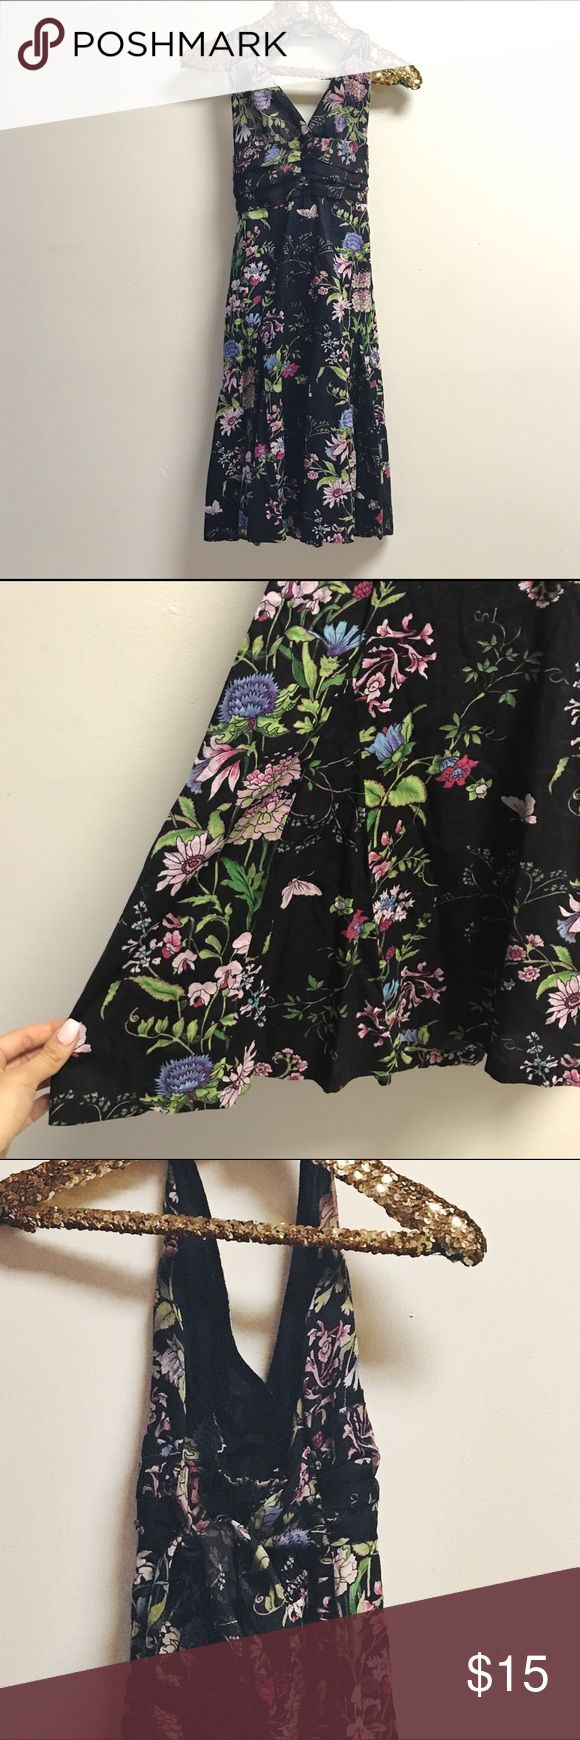 💐black floral halter sundress💐 black tie back halter dress with a delicate japanese inspired light pink & lavender floral print and a few beautifully placed butterflies.  elastic cinched back with a bow tie for an easy fit. bodice is a crepe polyester and the skirt is cotton, hits right around the knee (just above for me, 5'6). juniors size 1 but fits like a typical women's small. 0 flaws! from charlotte russe but the print is so beautiful it looks more expensive💜 Charlotte Russe Dresses